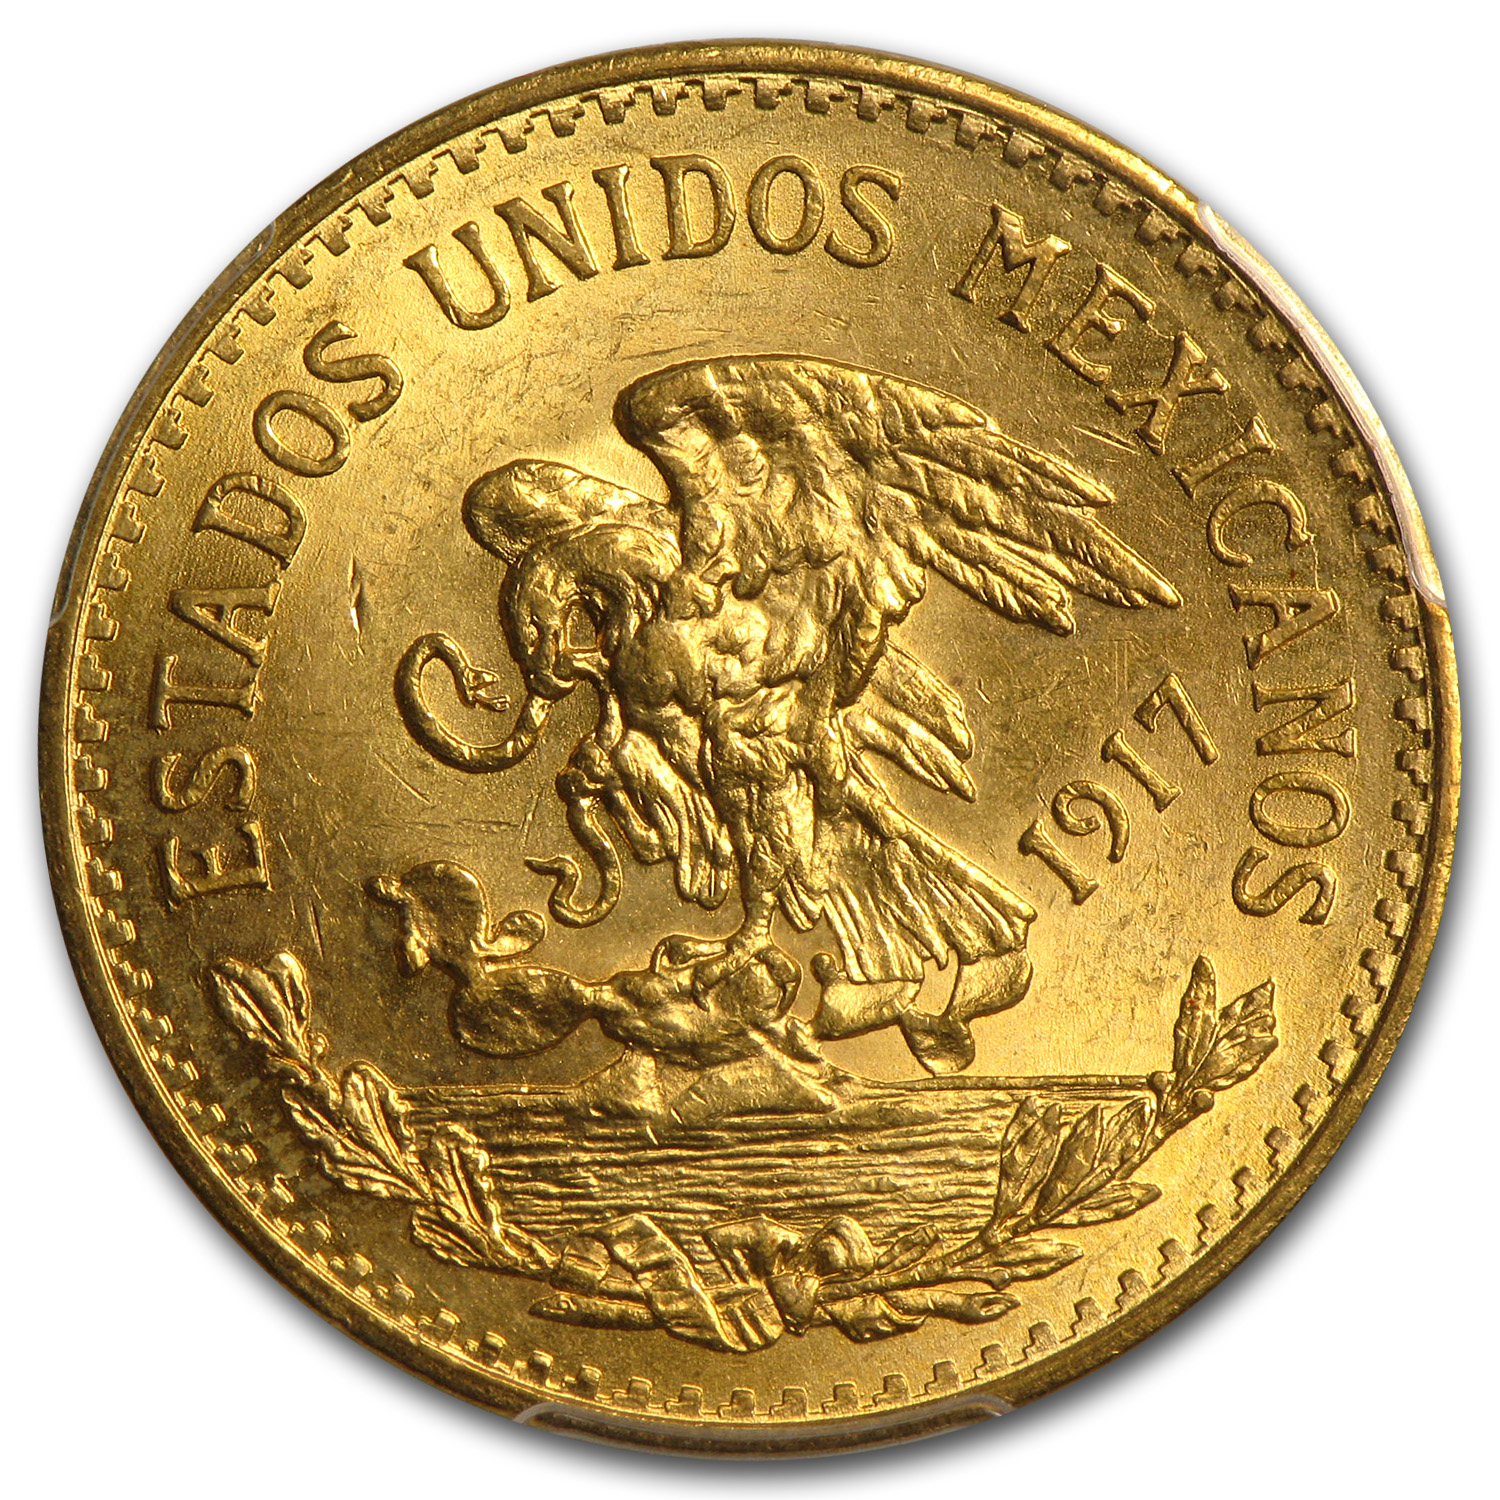 Mexico 1917 20 Pesos Gold Coin - MS-63 PCGS